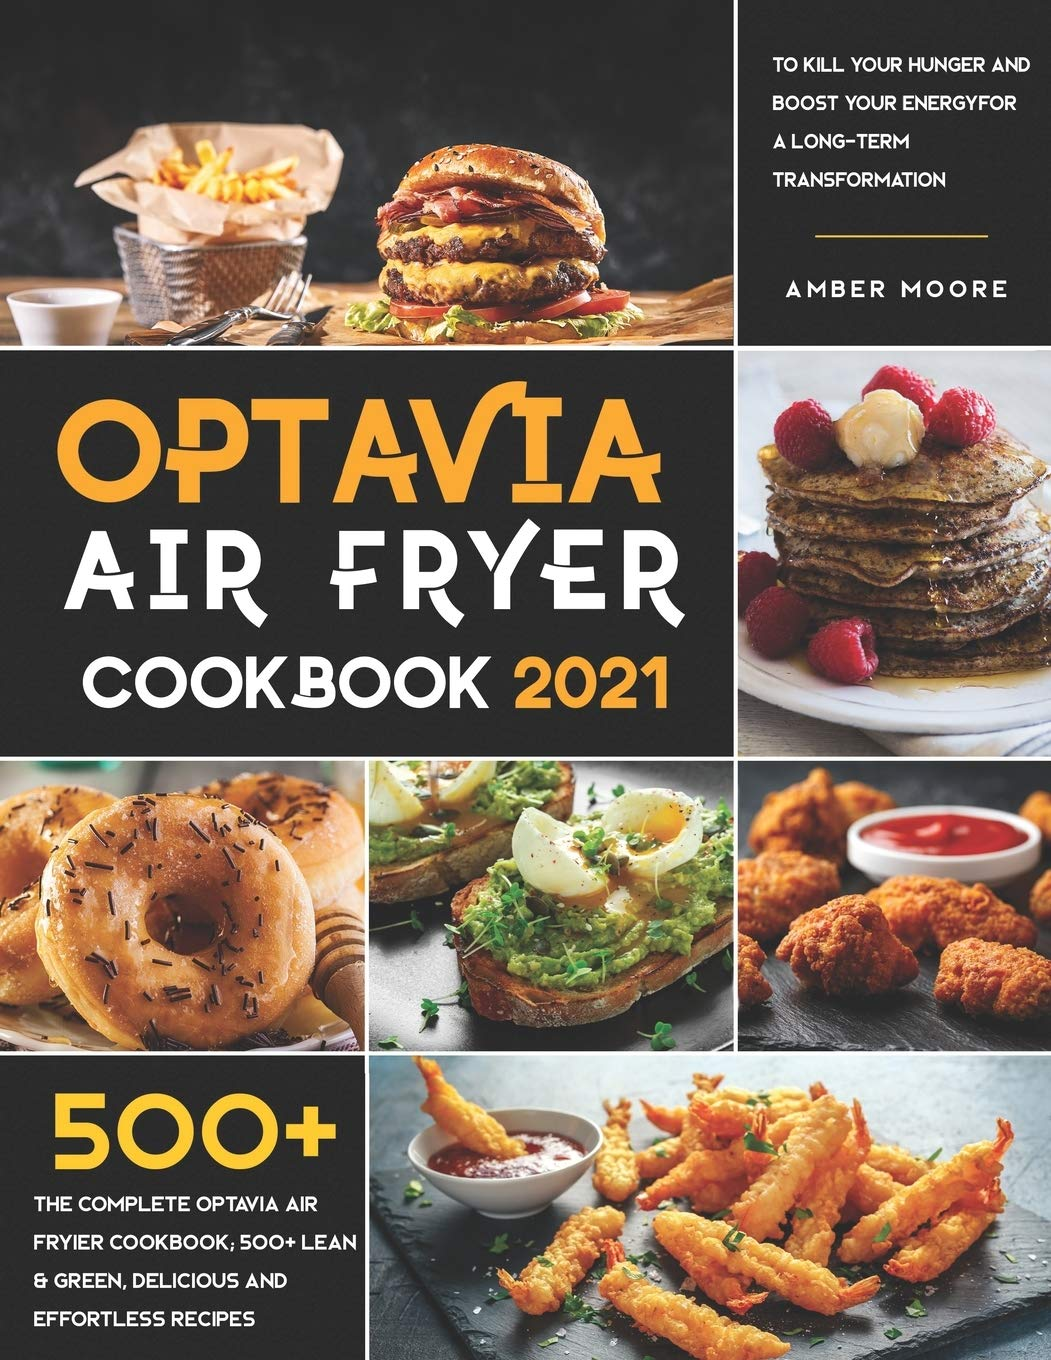 Optavia Air Fryer Cookbook 2021: The complete Optavia Air Fryier Cookbook; 500+ Lean & Green, Delicious and Effortless Recipes to Kill your Hunger and Boost your Energy for a Long-Term Transformation 1